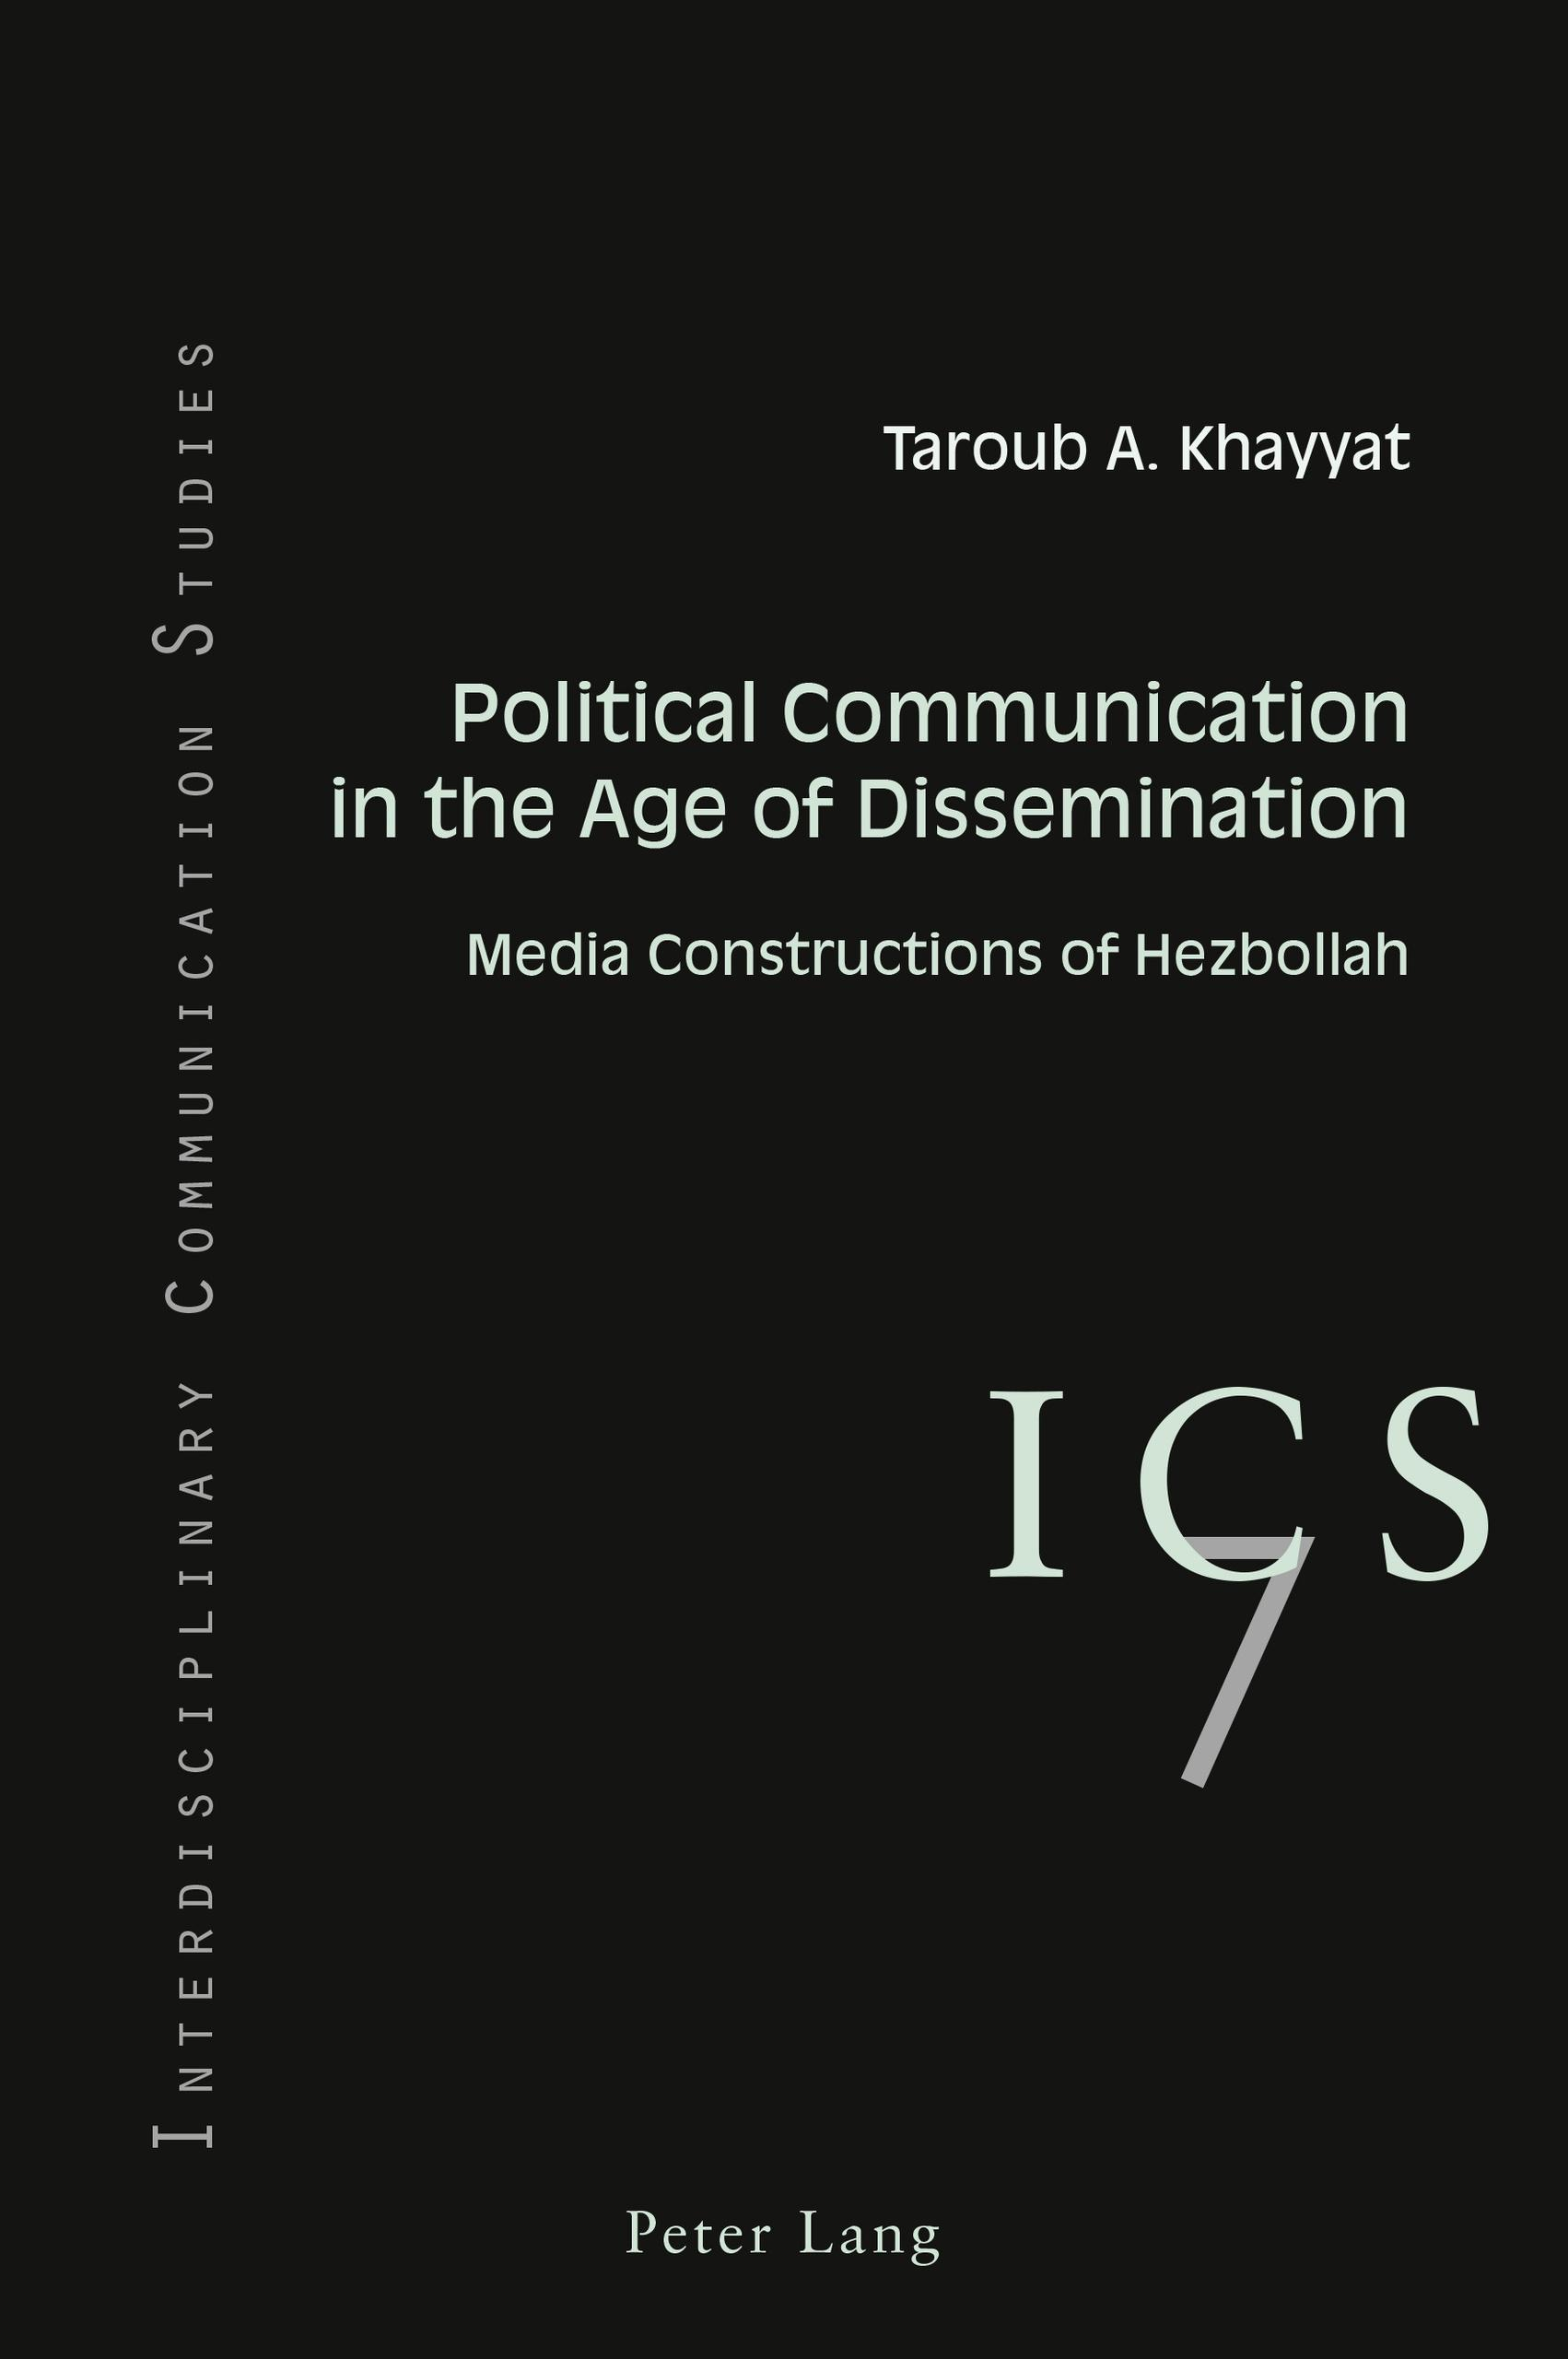 Political-Communication-in-the-Age-of-Dissemination-Taroub-Abdul-Aziz-Khay